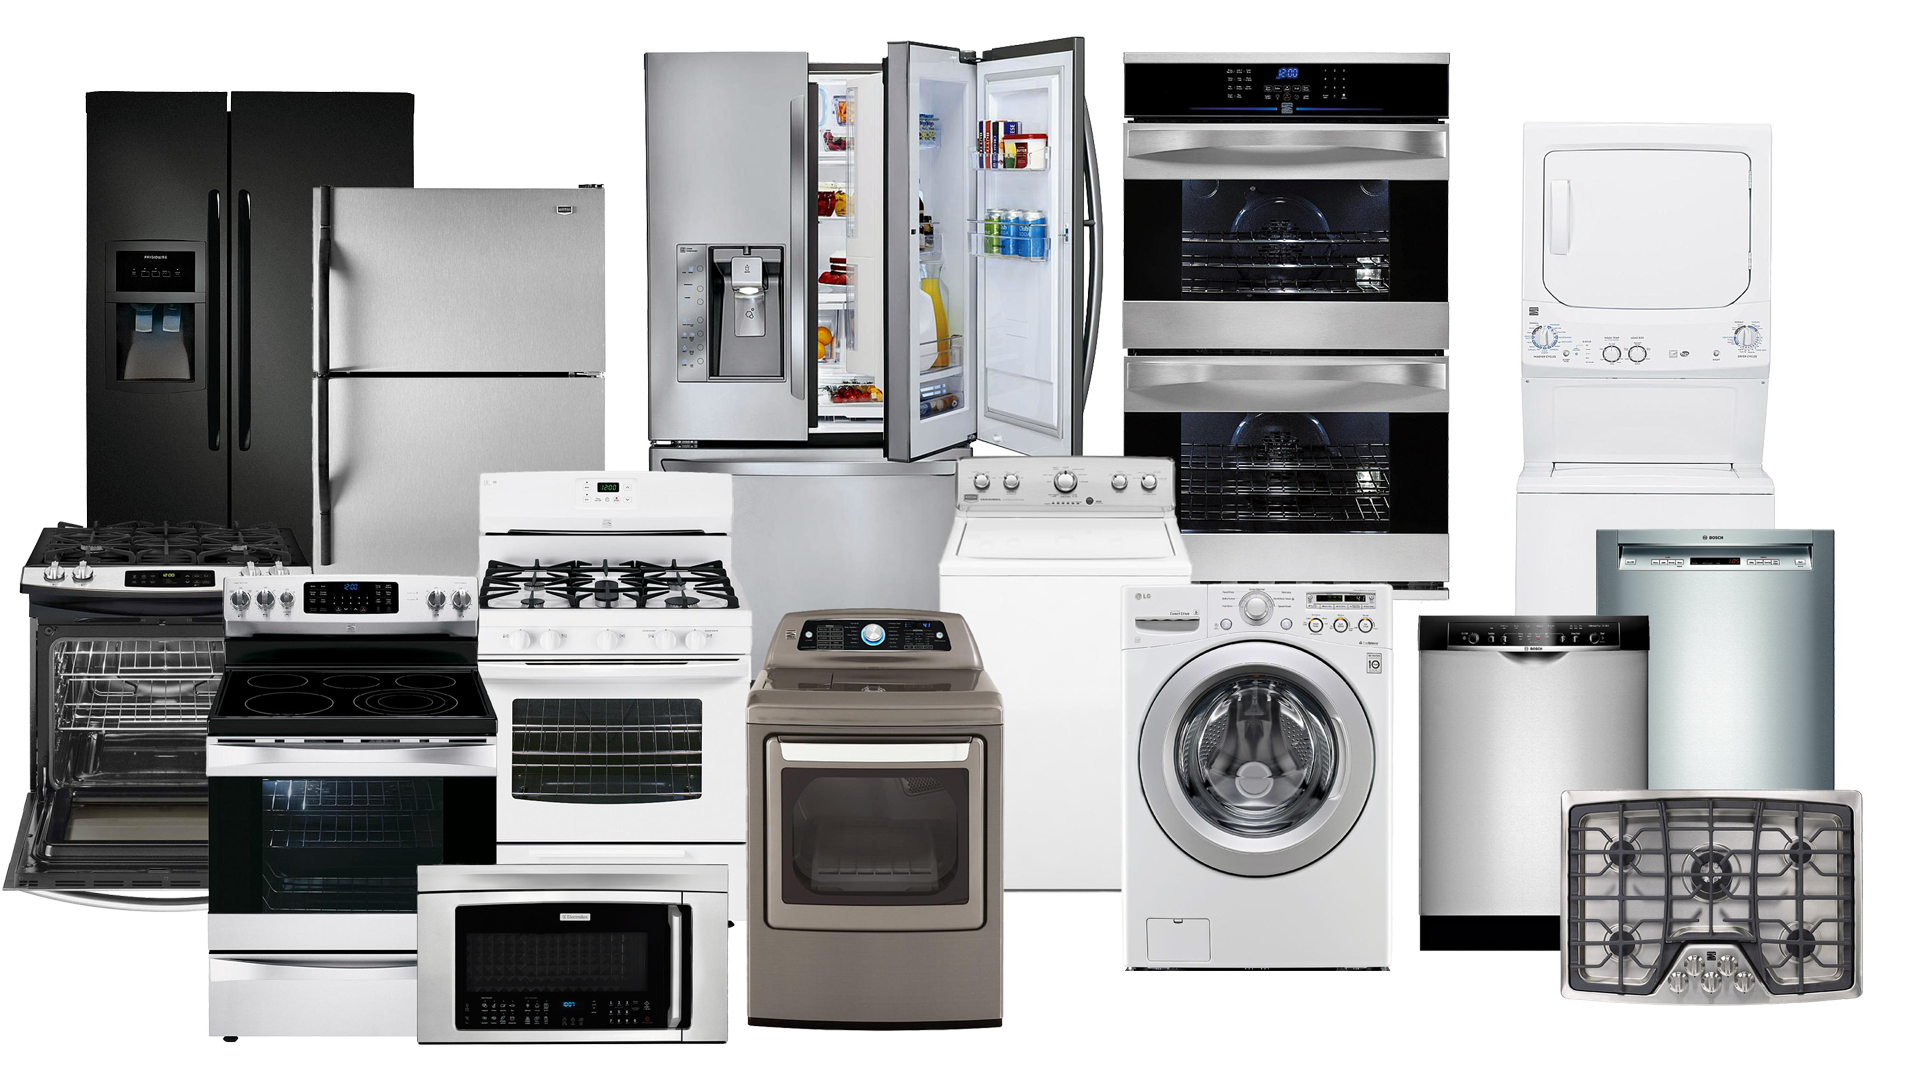 Beau Appliance Repair Services Brooklyn, 11215